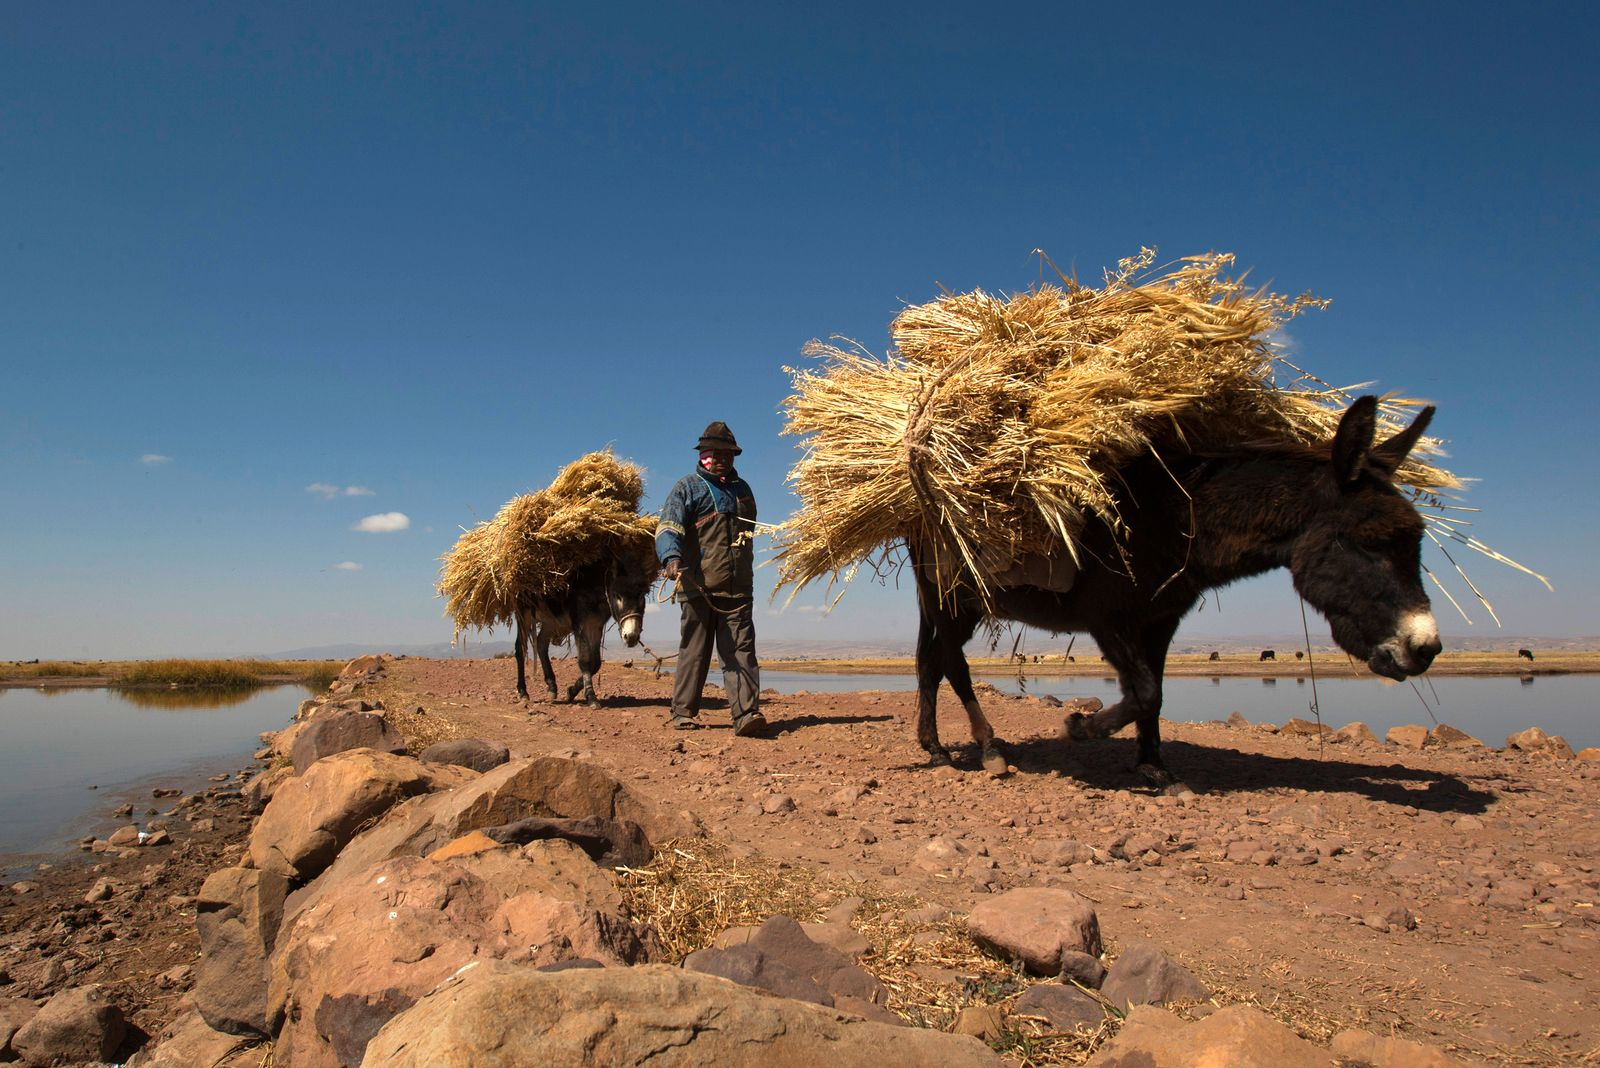 A resident of Cohana Bay transports barley with his donkeys on the shores of Titicaca lake